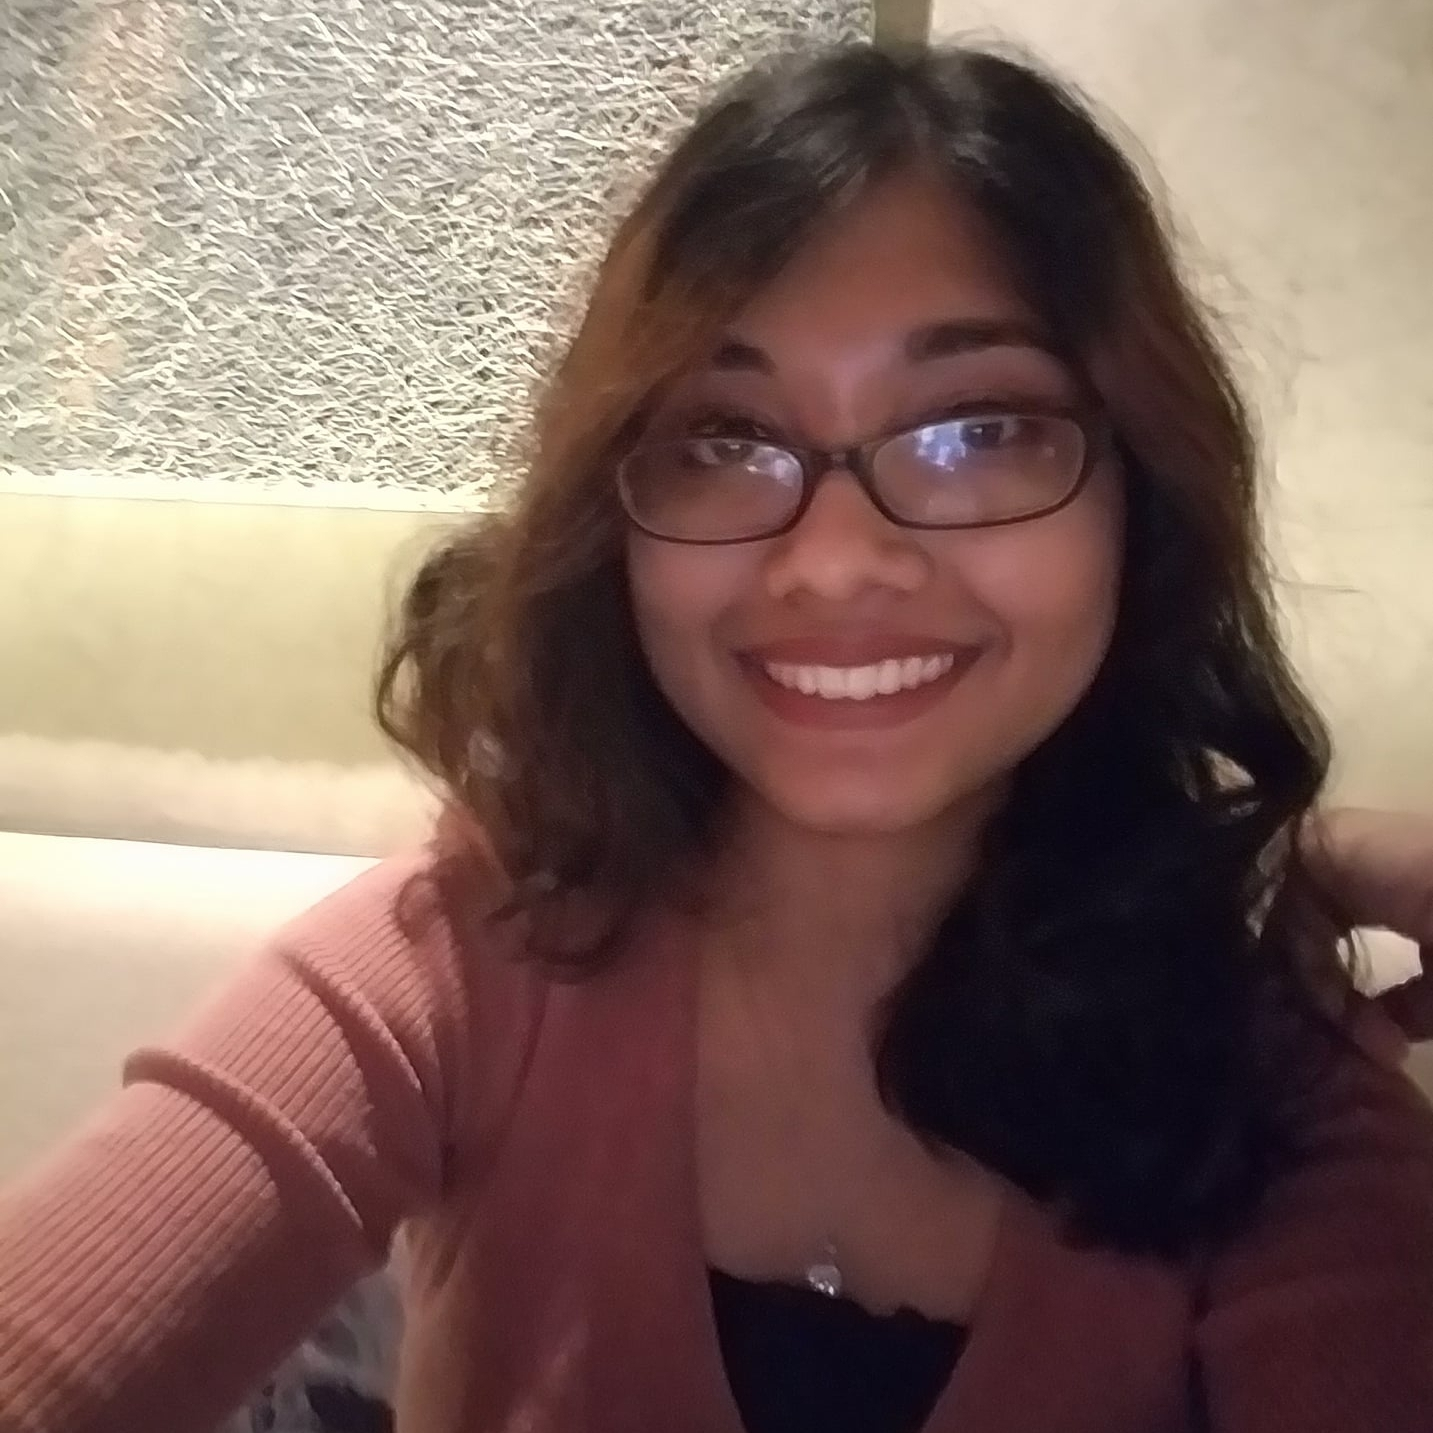 Copy Editor  Sumaita Hasan  Sumaita Hasan is a sophomore at the Macaulay Honors College at Hunter College. She plans to pursue a double major in English and Music and a minor in Film. She enjoys singing and watching movies (especially horror).